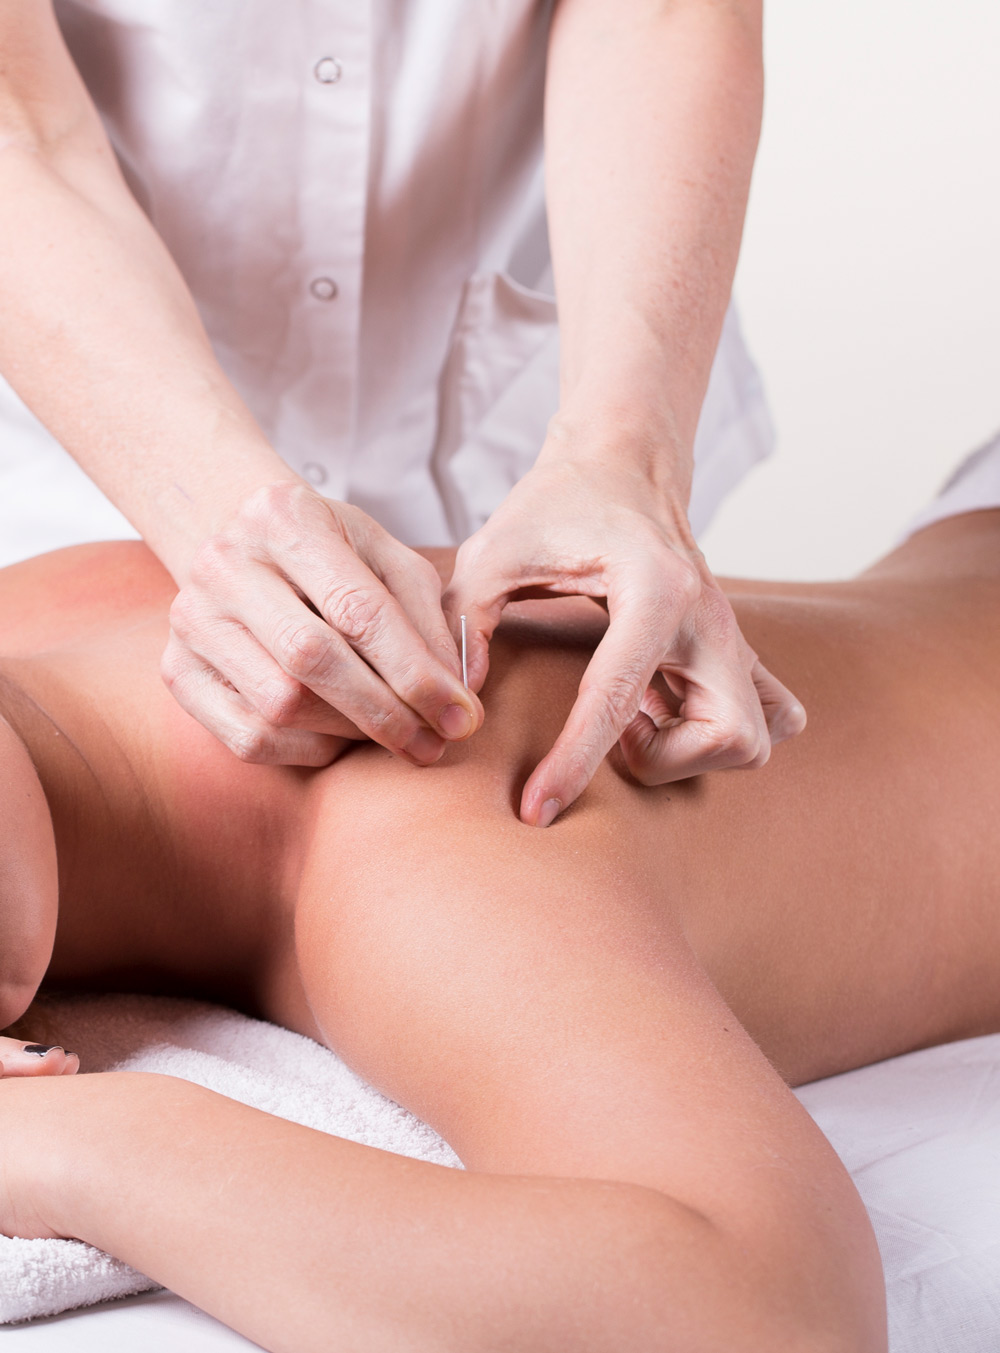 Dry needle physical therapy in Jacksonville, FL.